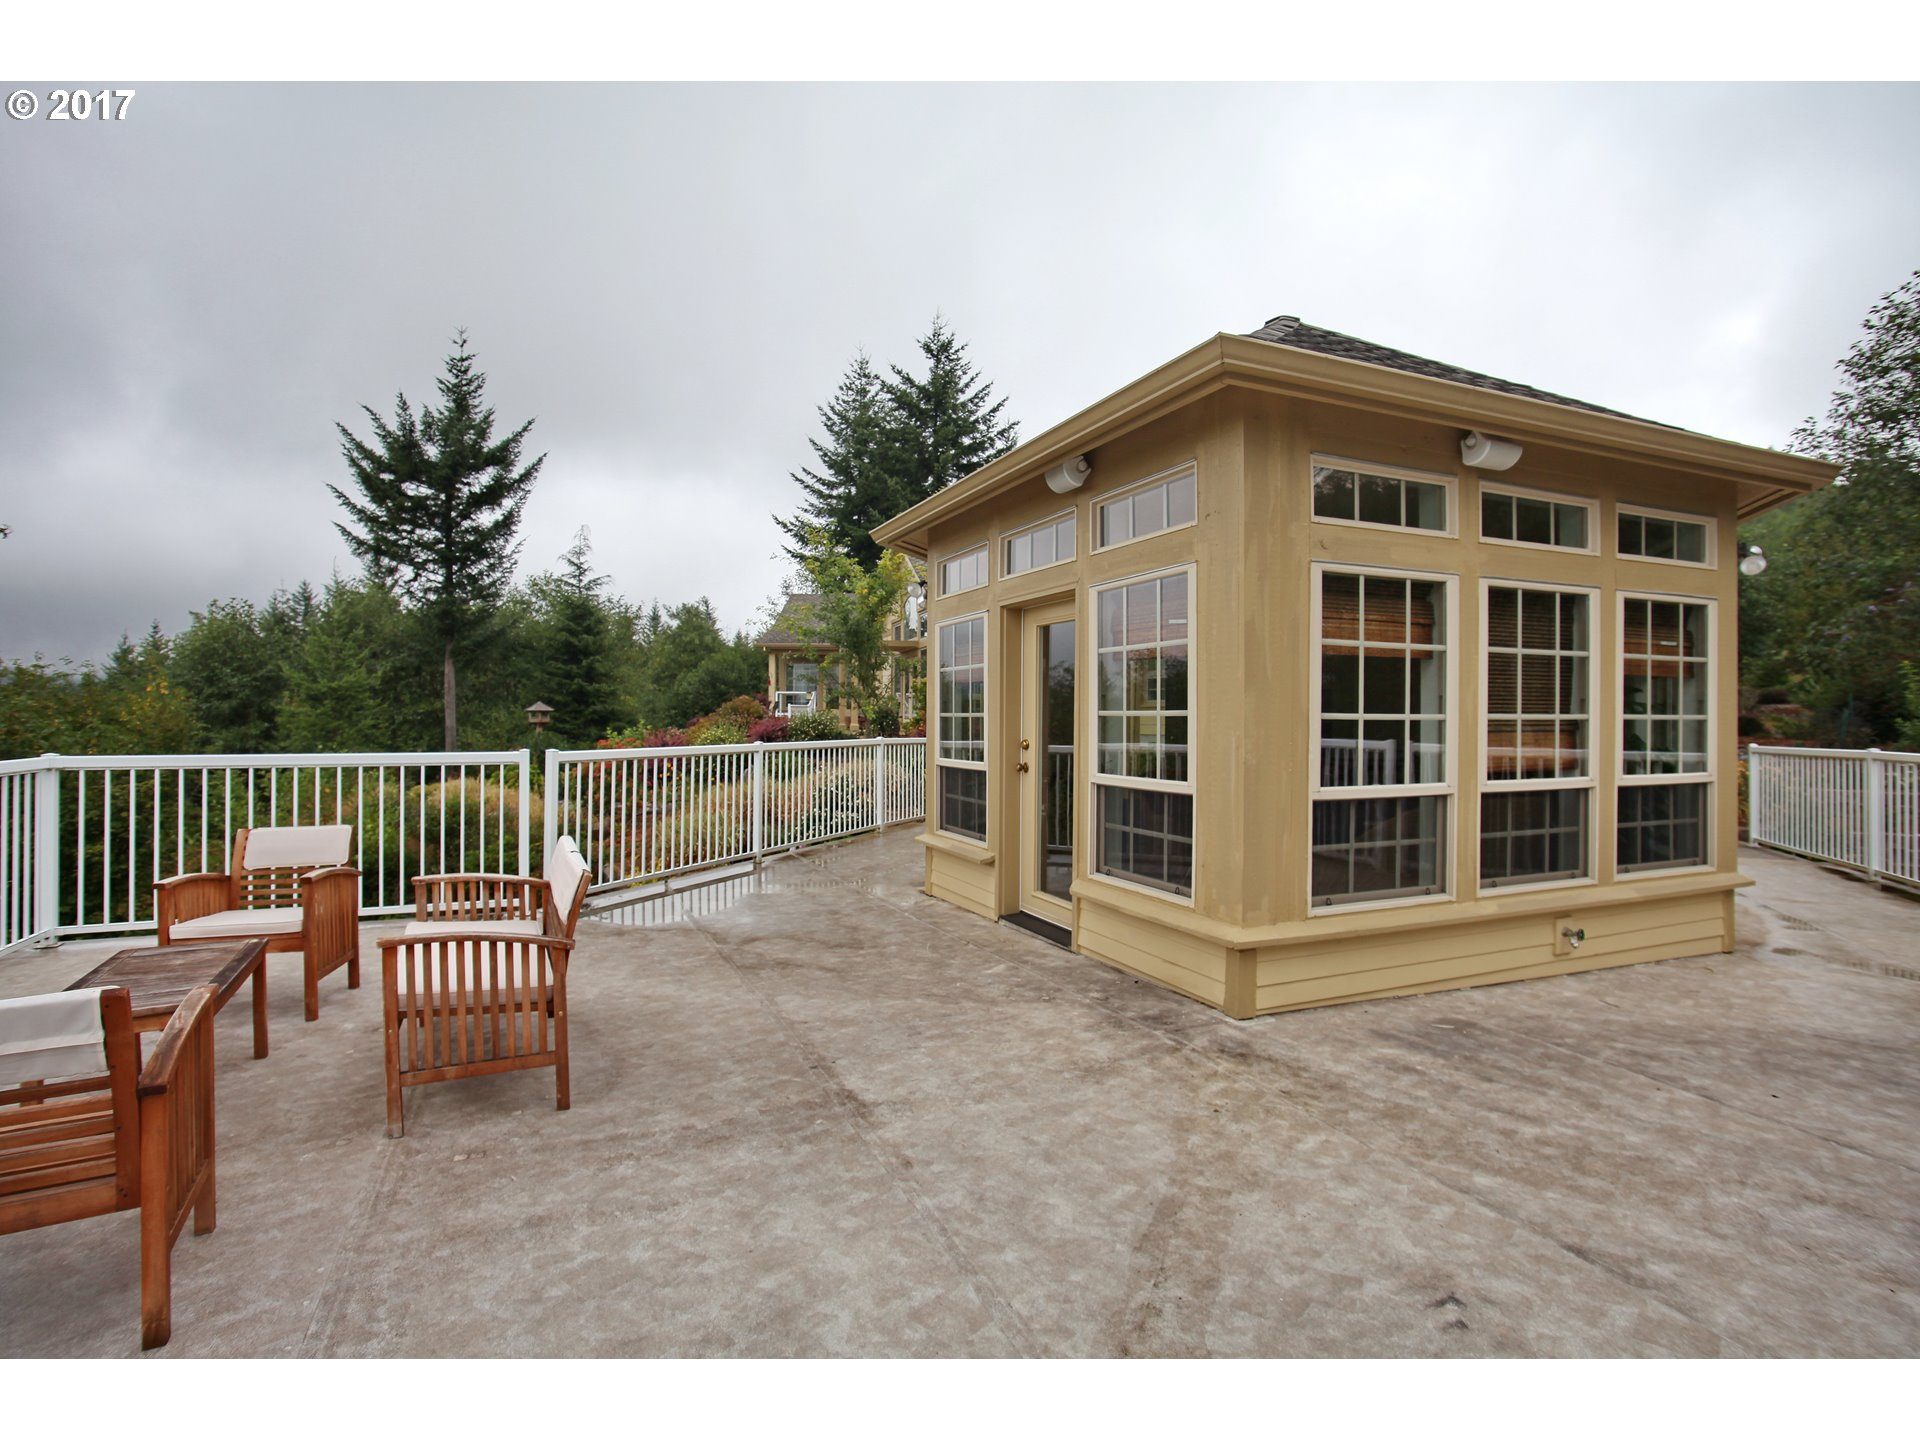 8200 NE 297TH CT Camas, WA 98607 - MLS #: 17512786